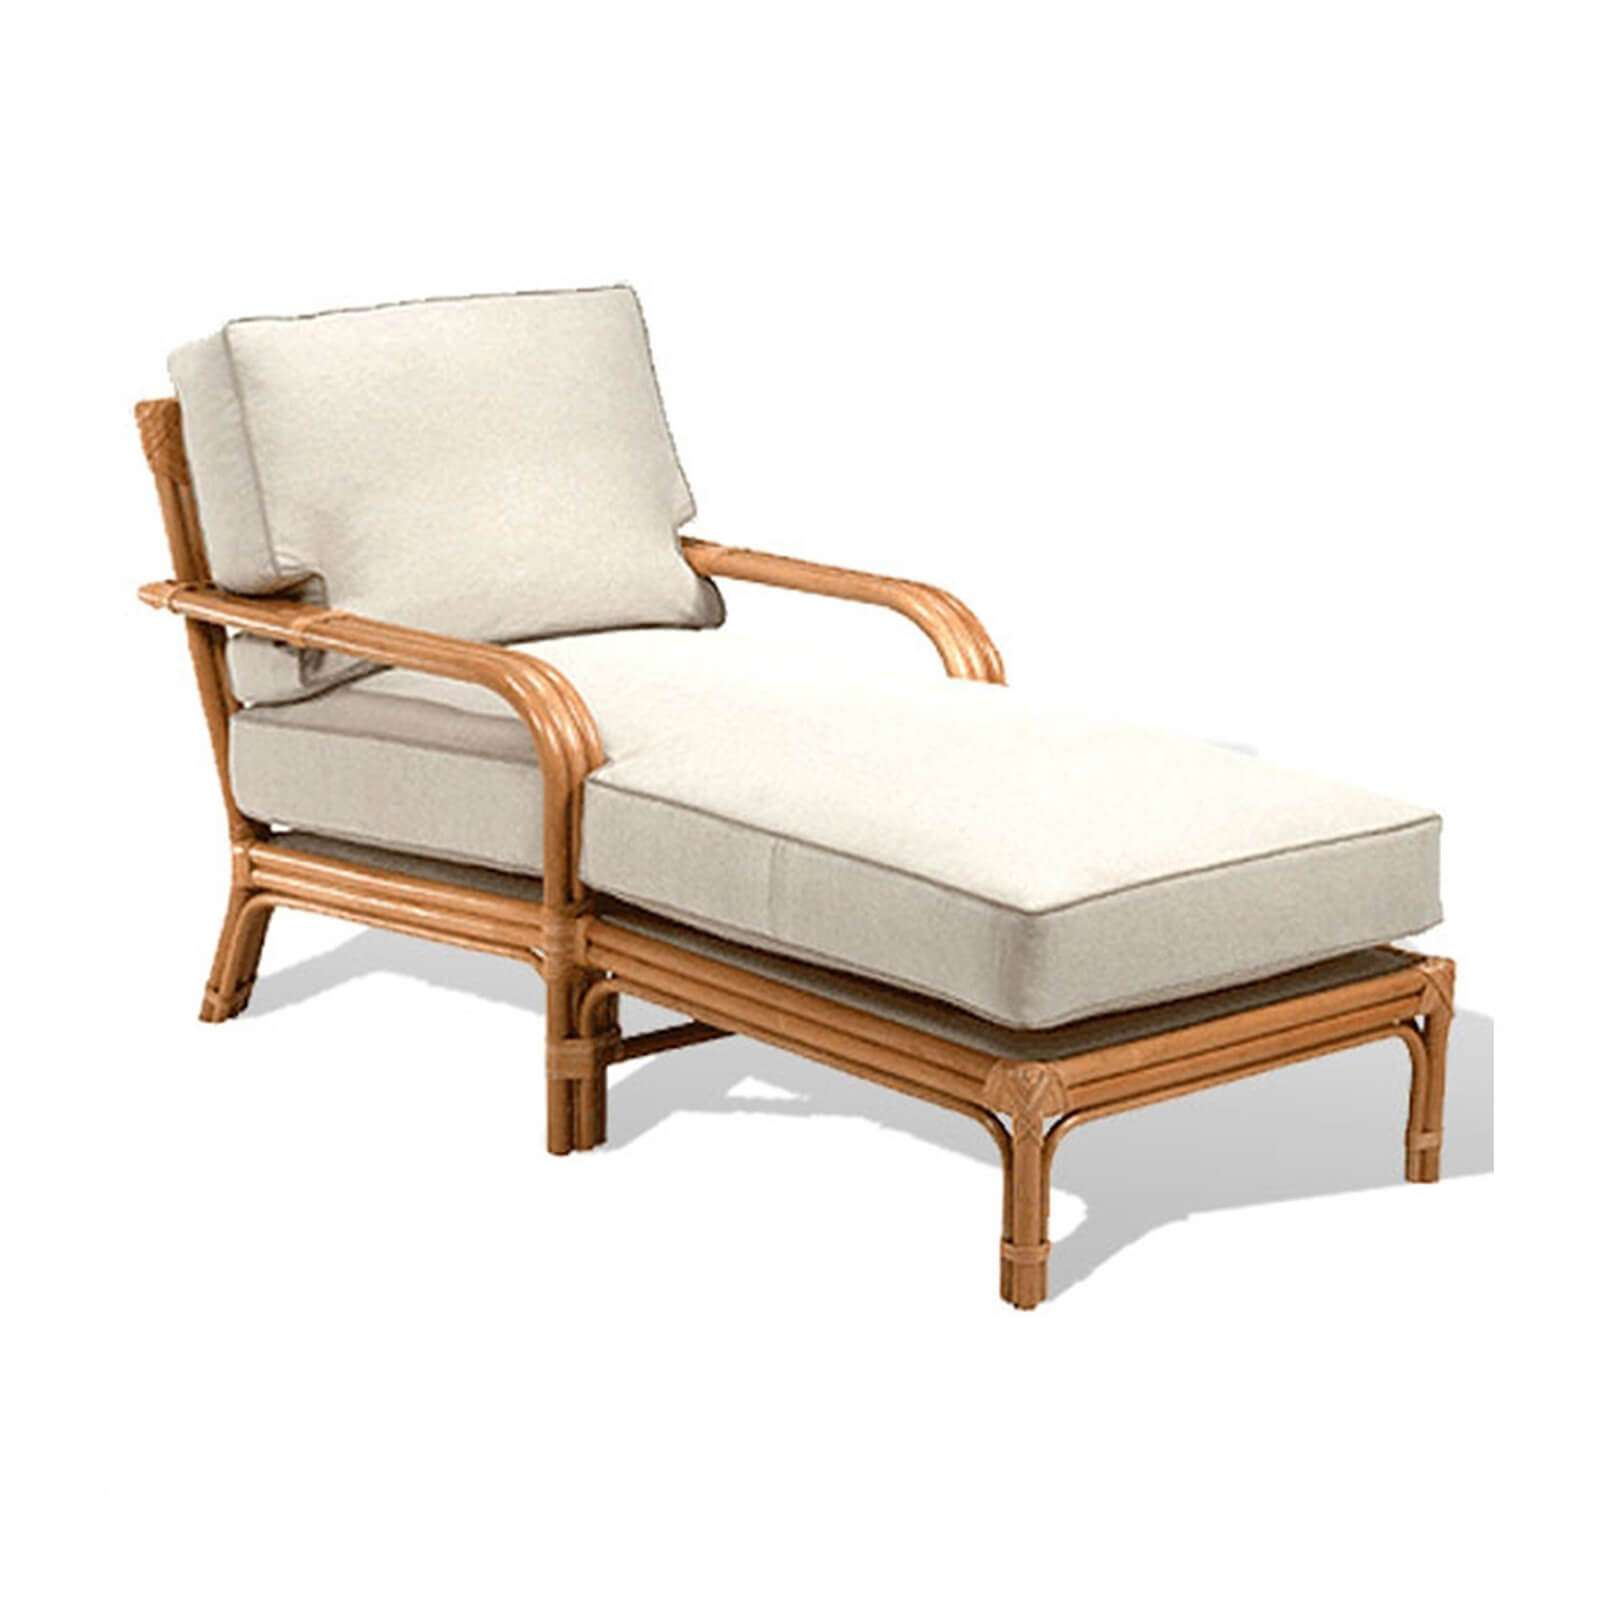 JAMAICA DAYBED 1 - STUART MEMBERY HOME COLLECTION